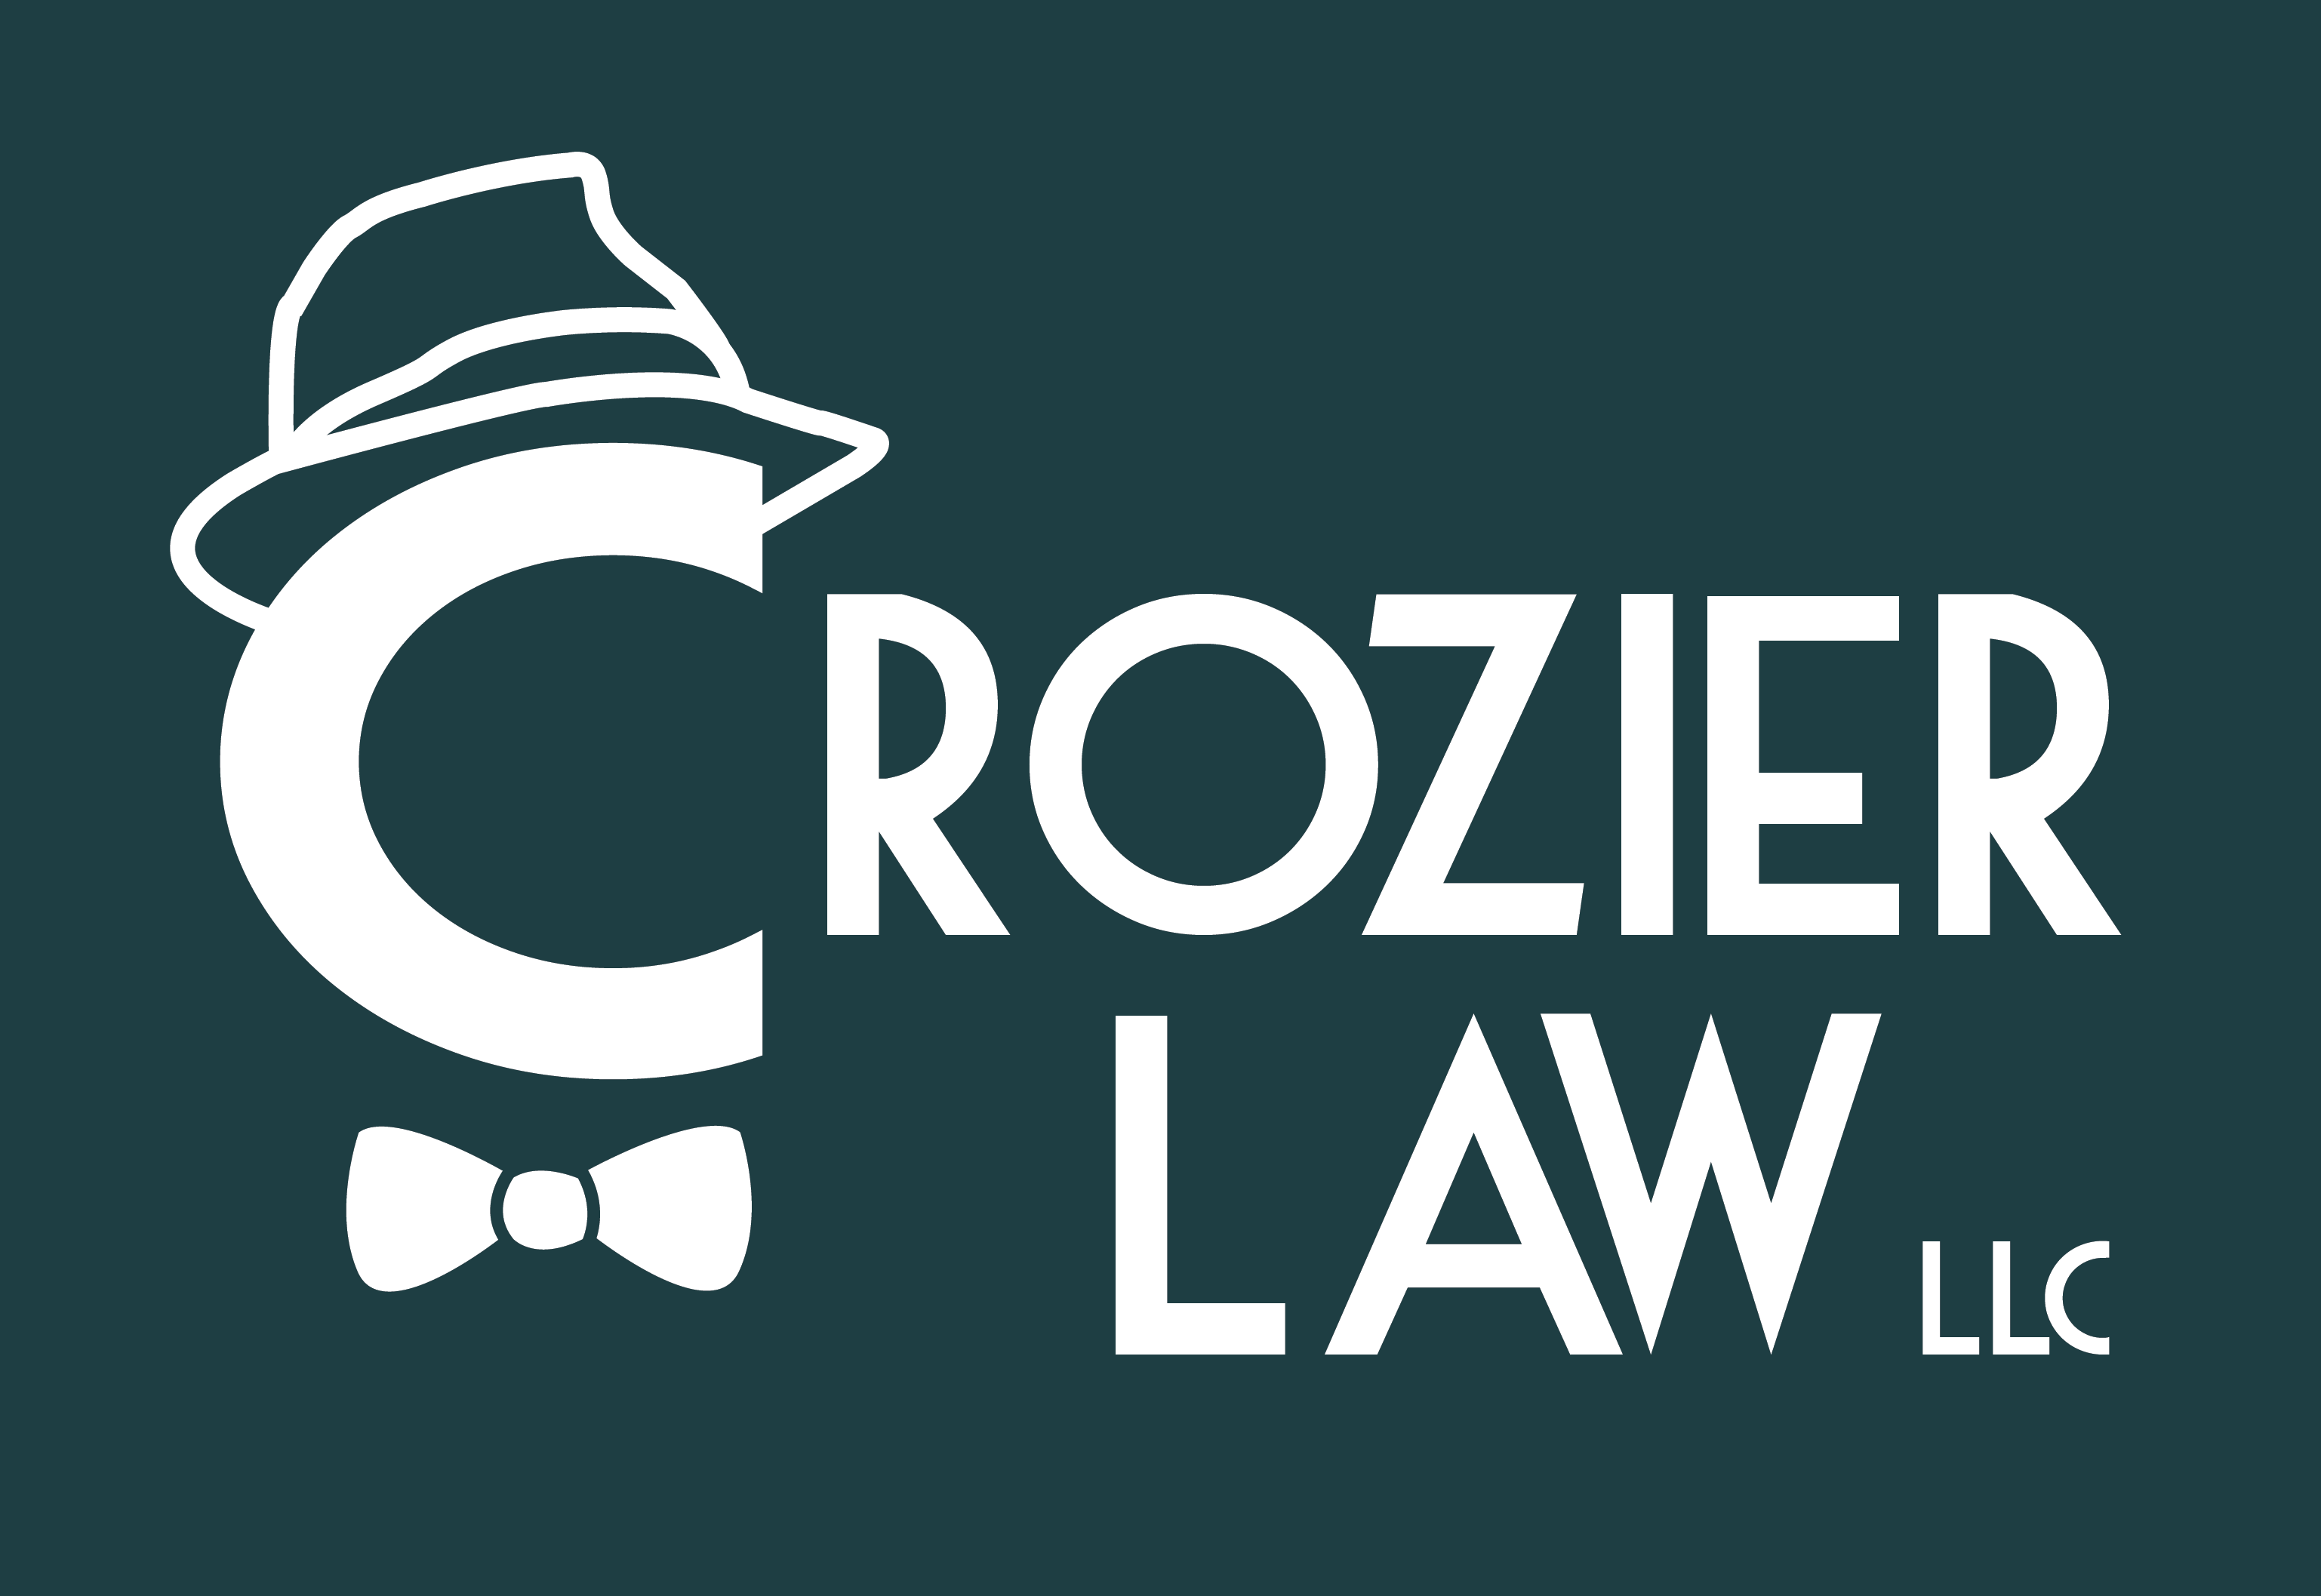 Crozier Law, LLC